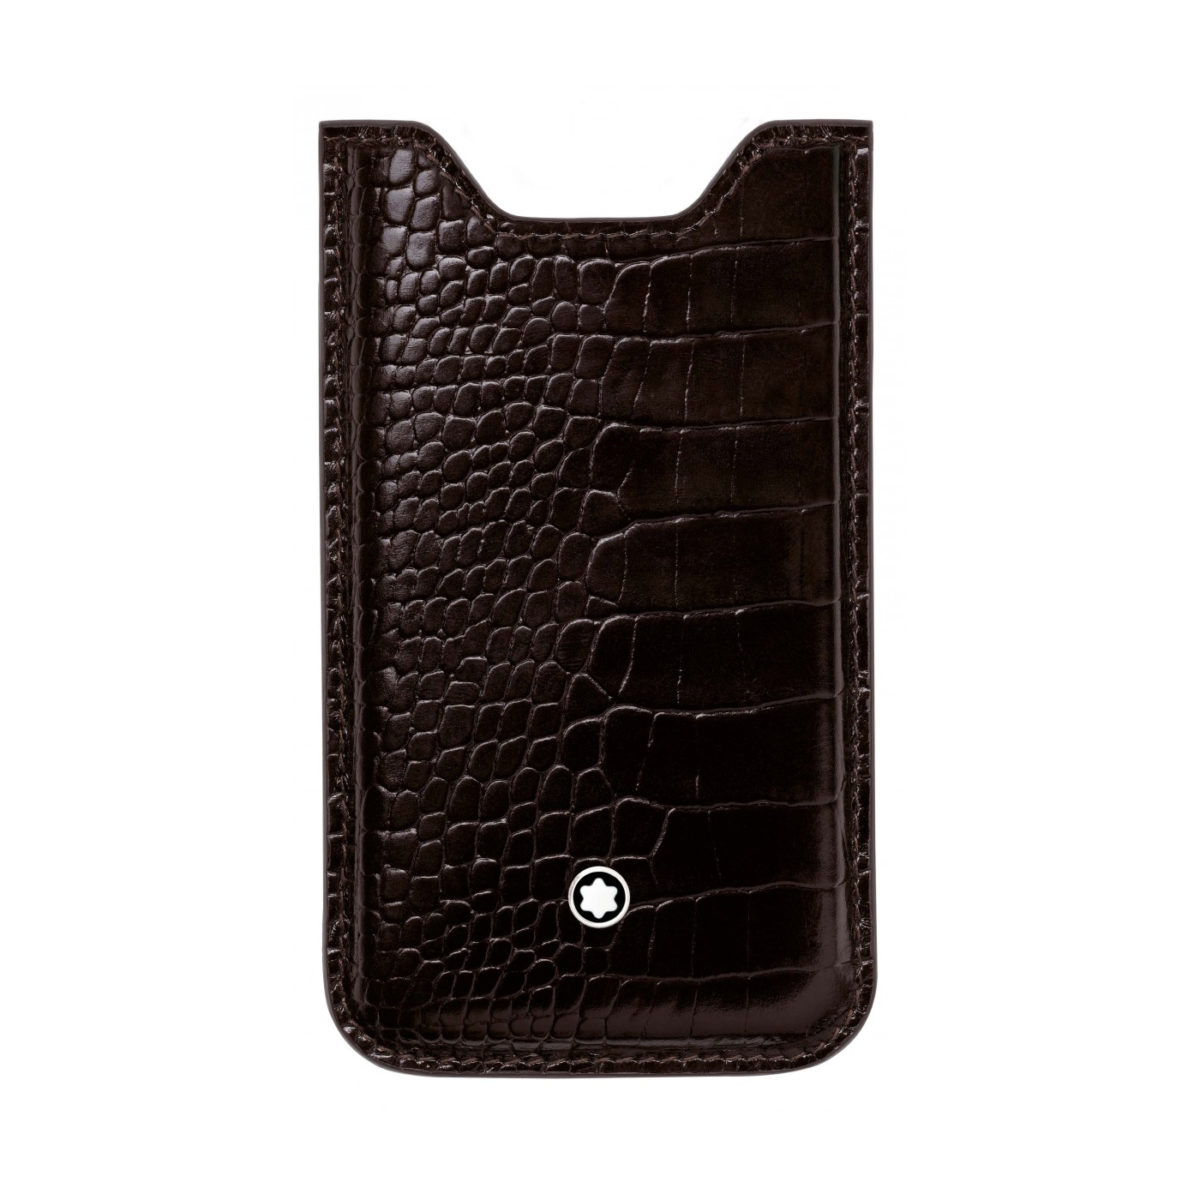 109628 — Montblanc Meisterstuck Leather Iphone 5 Case